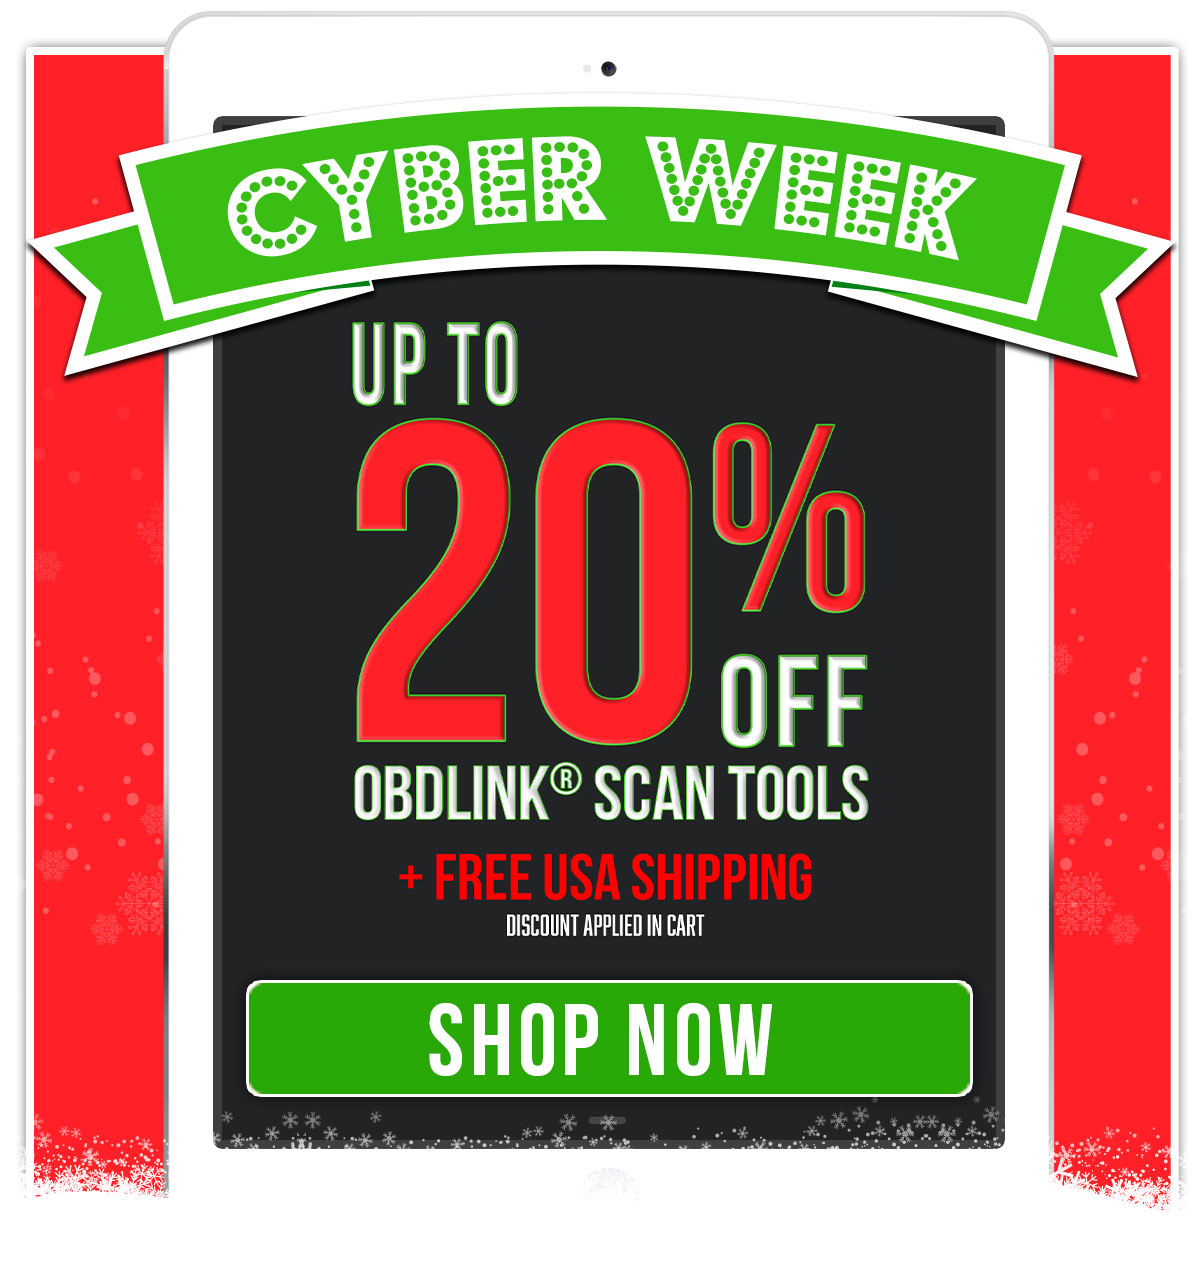 Cyber Week Sale - Up to 20% off OBDLink scan tools